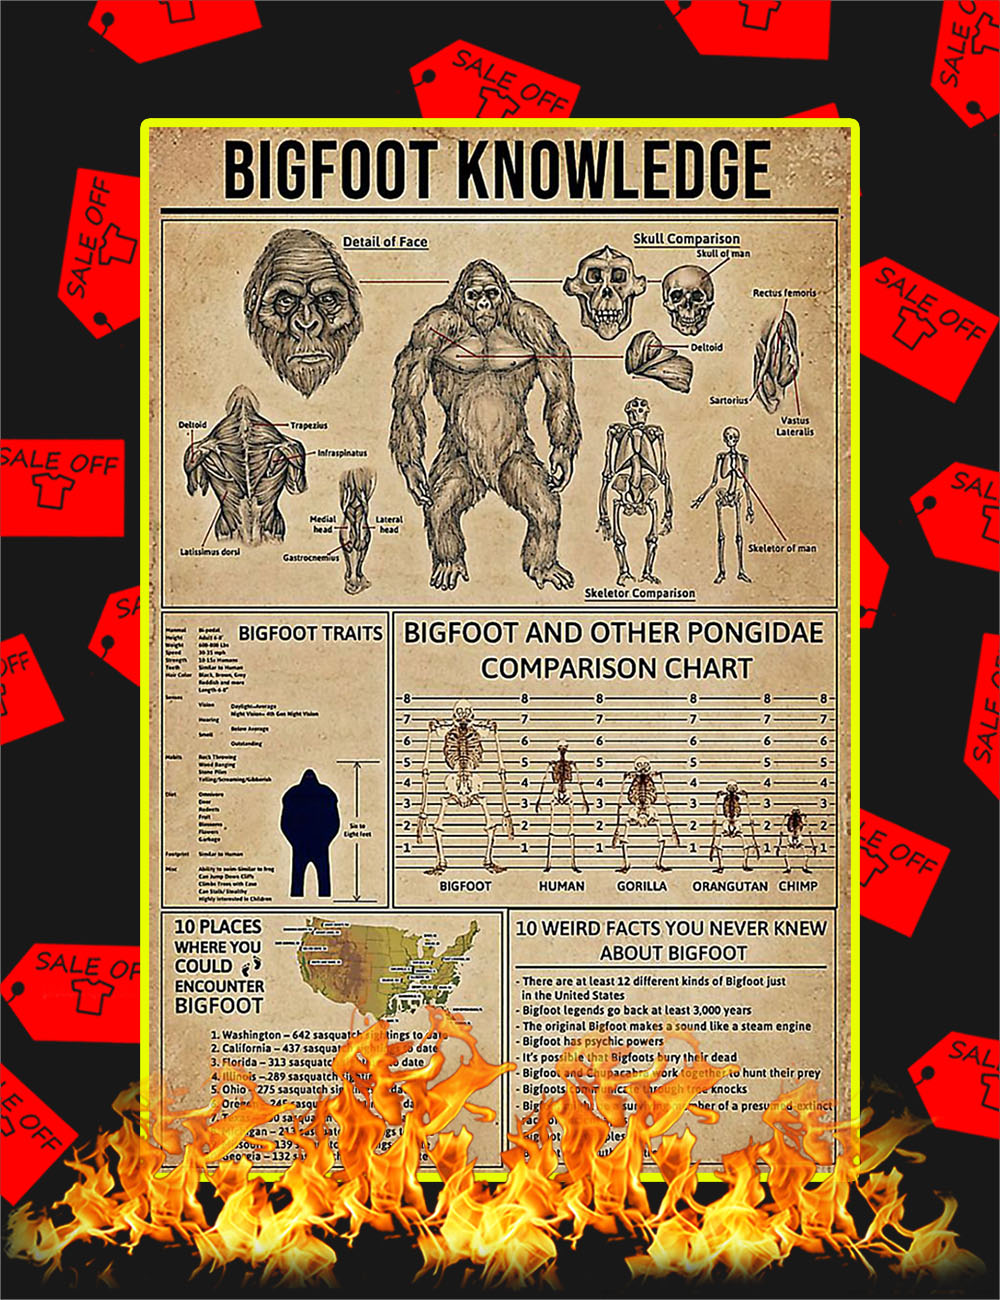 Bigfoot Knowledge Poster - 24x36